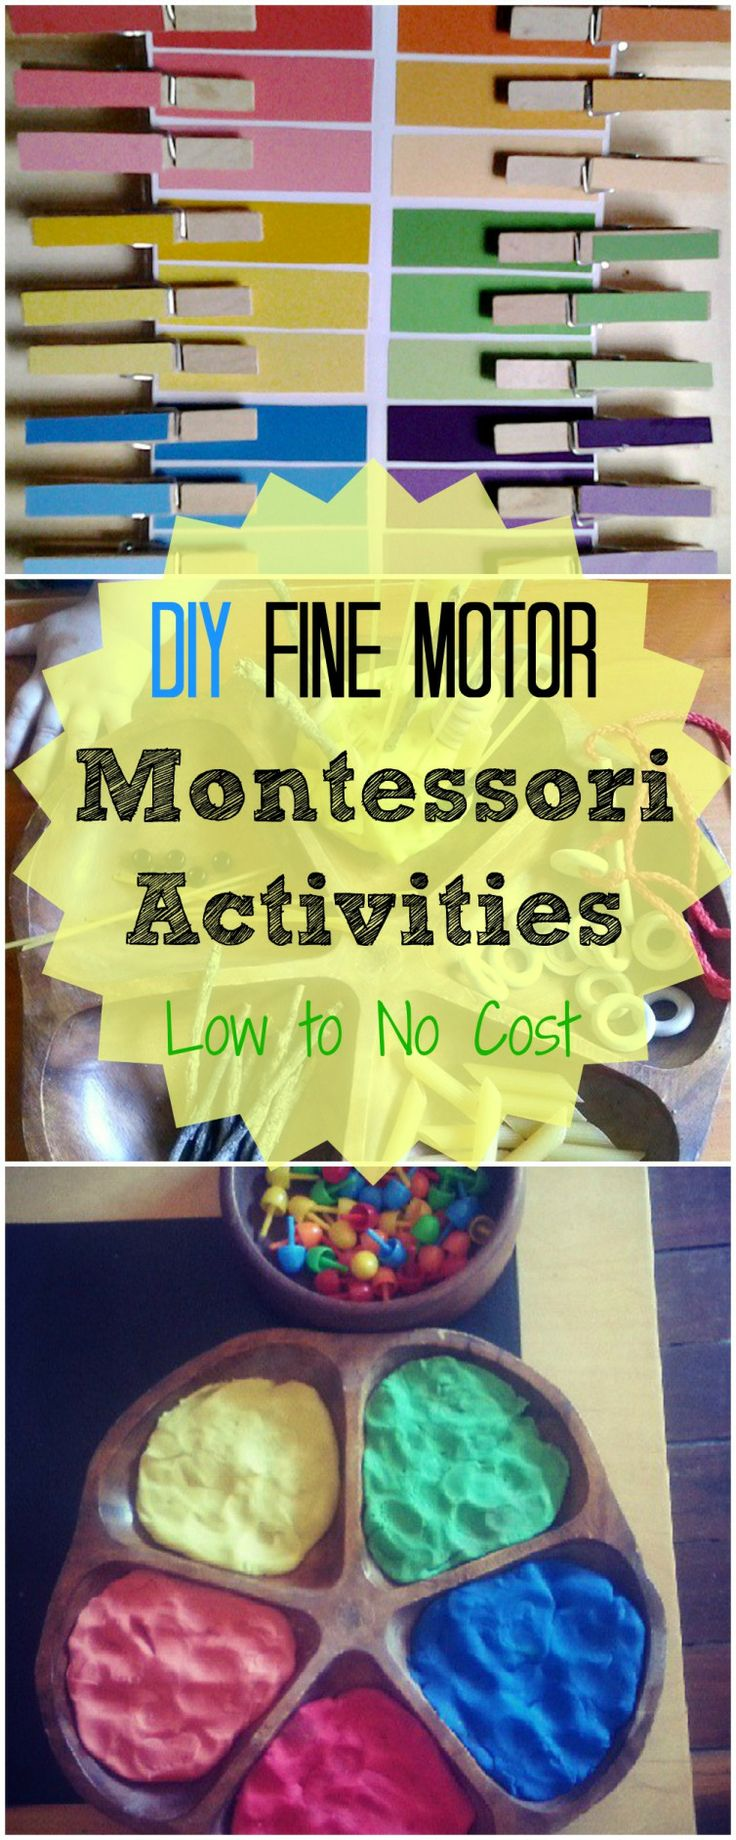 DIY Fine Motor Montessori Activities. Low-cost ways to work on fine Motor skills from Racheous. #FineMotor #Montessori #CreativeMamas